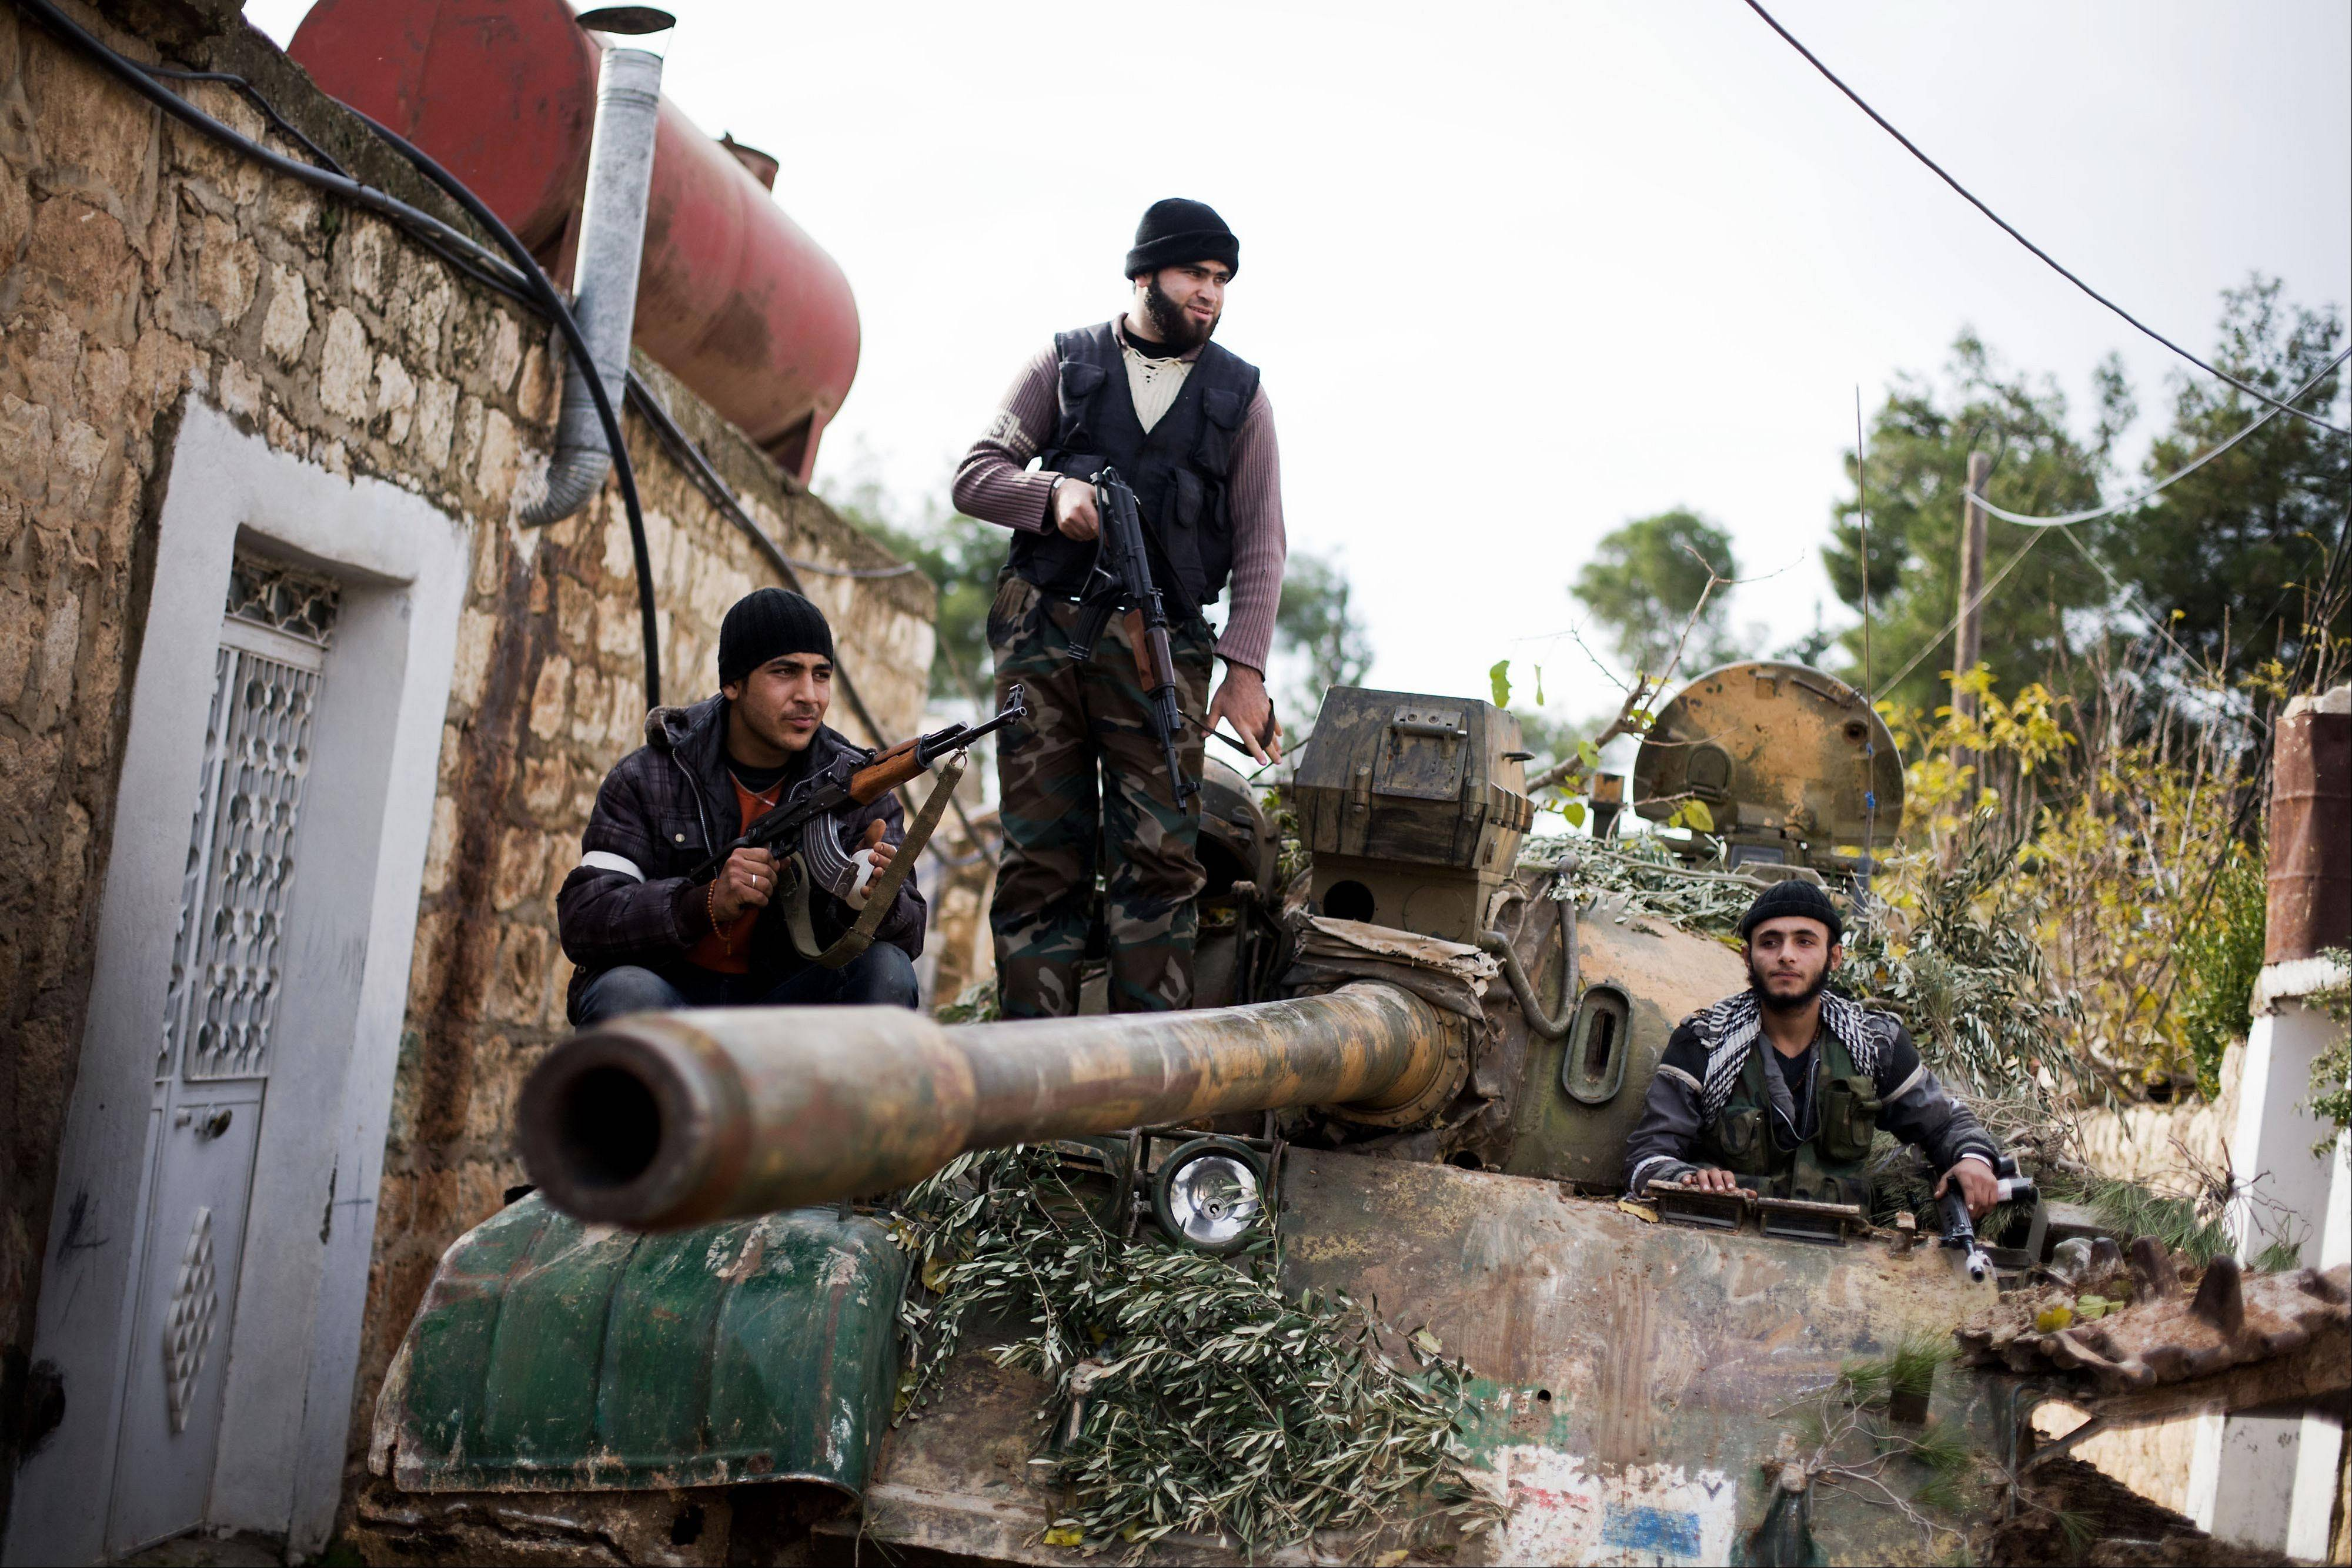 Kurdish members of the FSA are seen on a tank stolen from the Syrian Army in Fafeen village, north of Aleppo province, Syria, Wednesday.